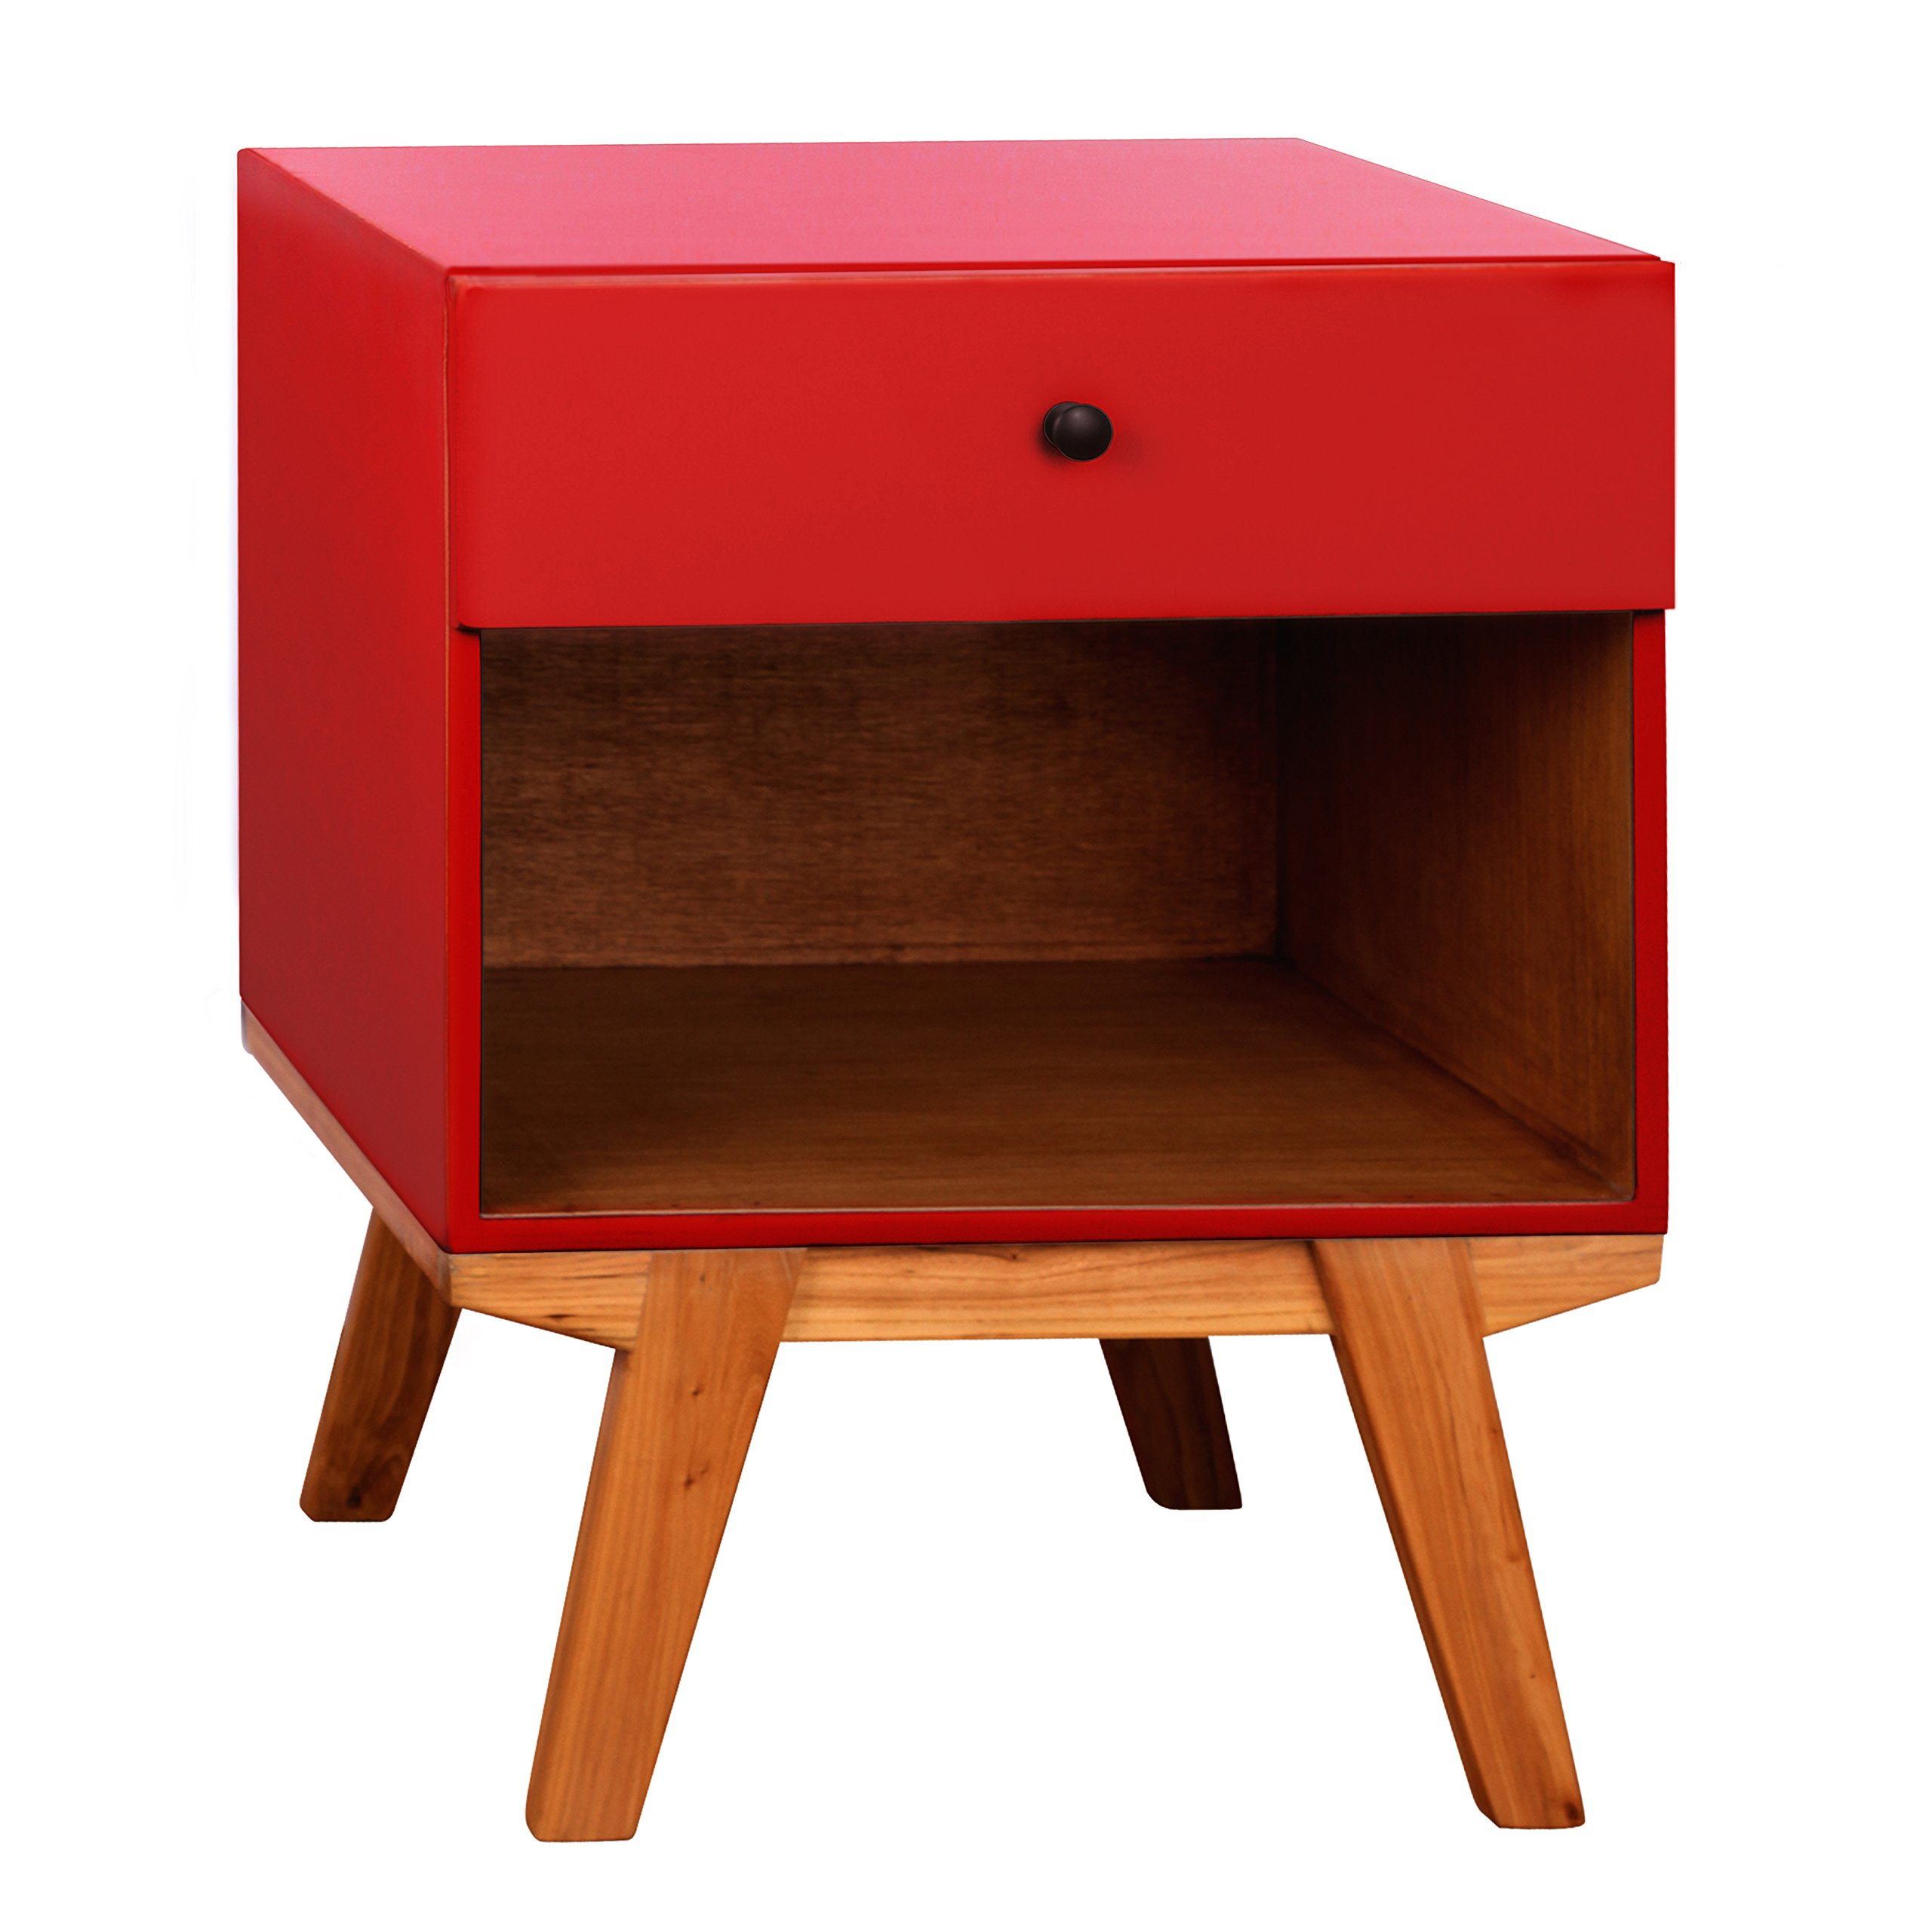 Porthos Home Clementine 1 Drawer Nightstand, Red